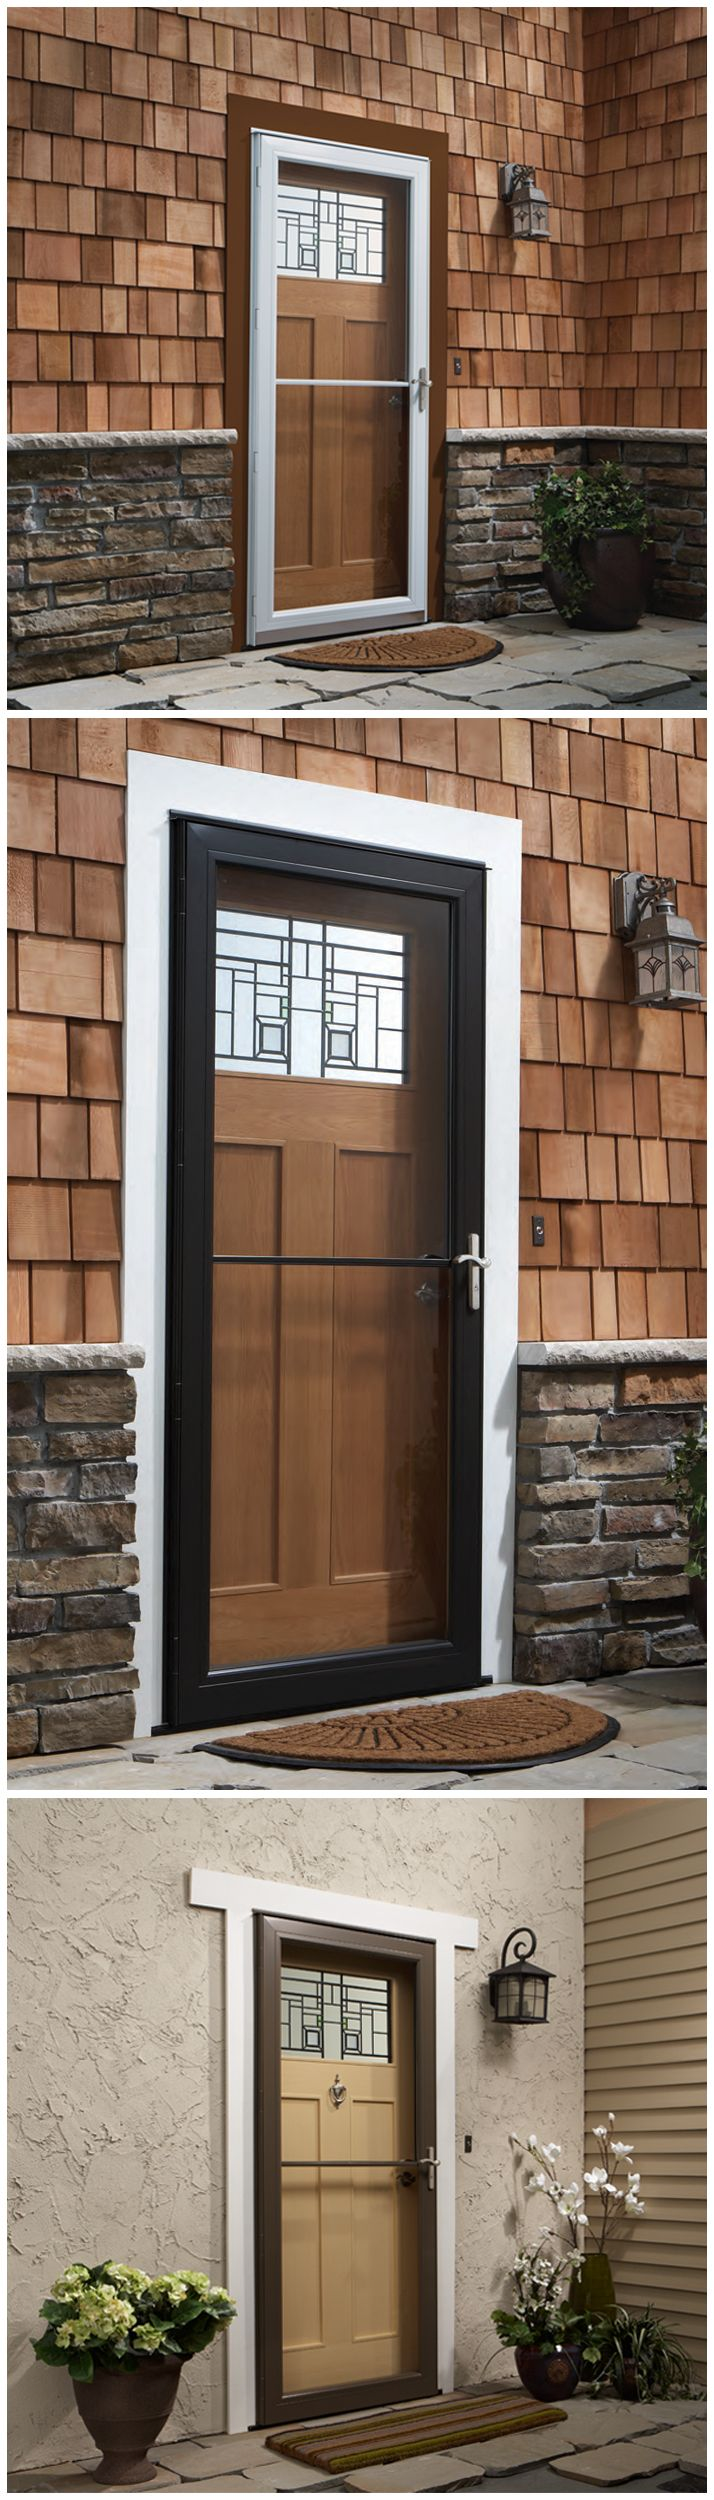 Best 20 glass storm doors ideas on pinterest storm doors glass choose a self storing storm door for a retractable insect screen that hides eventelaan Gallery